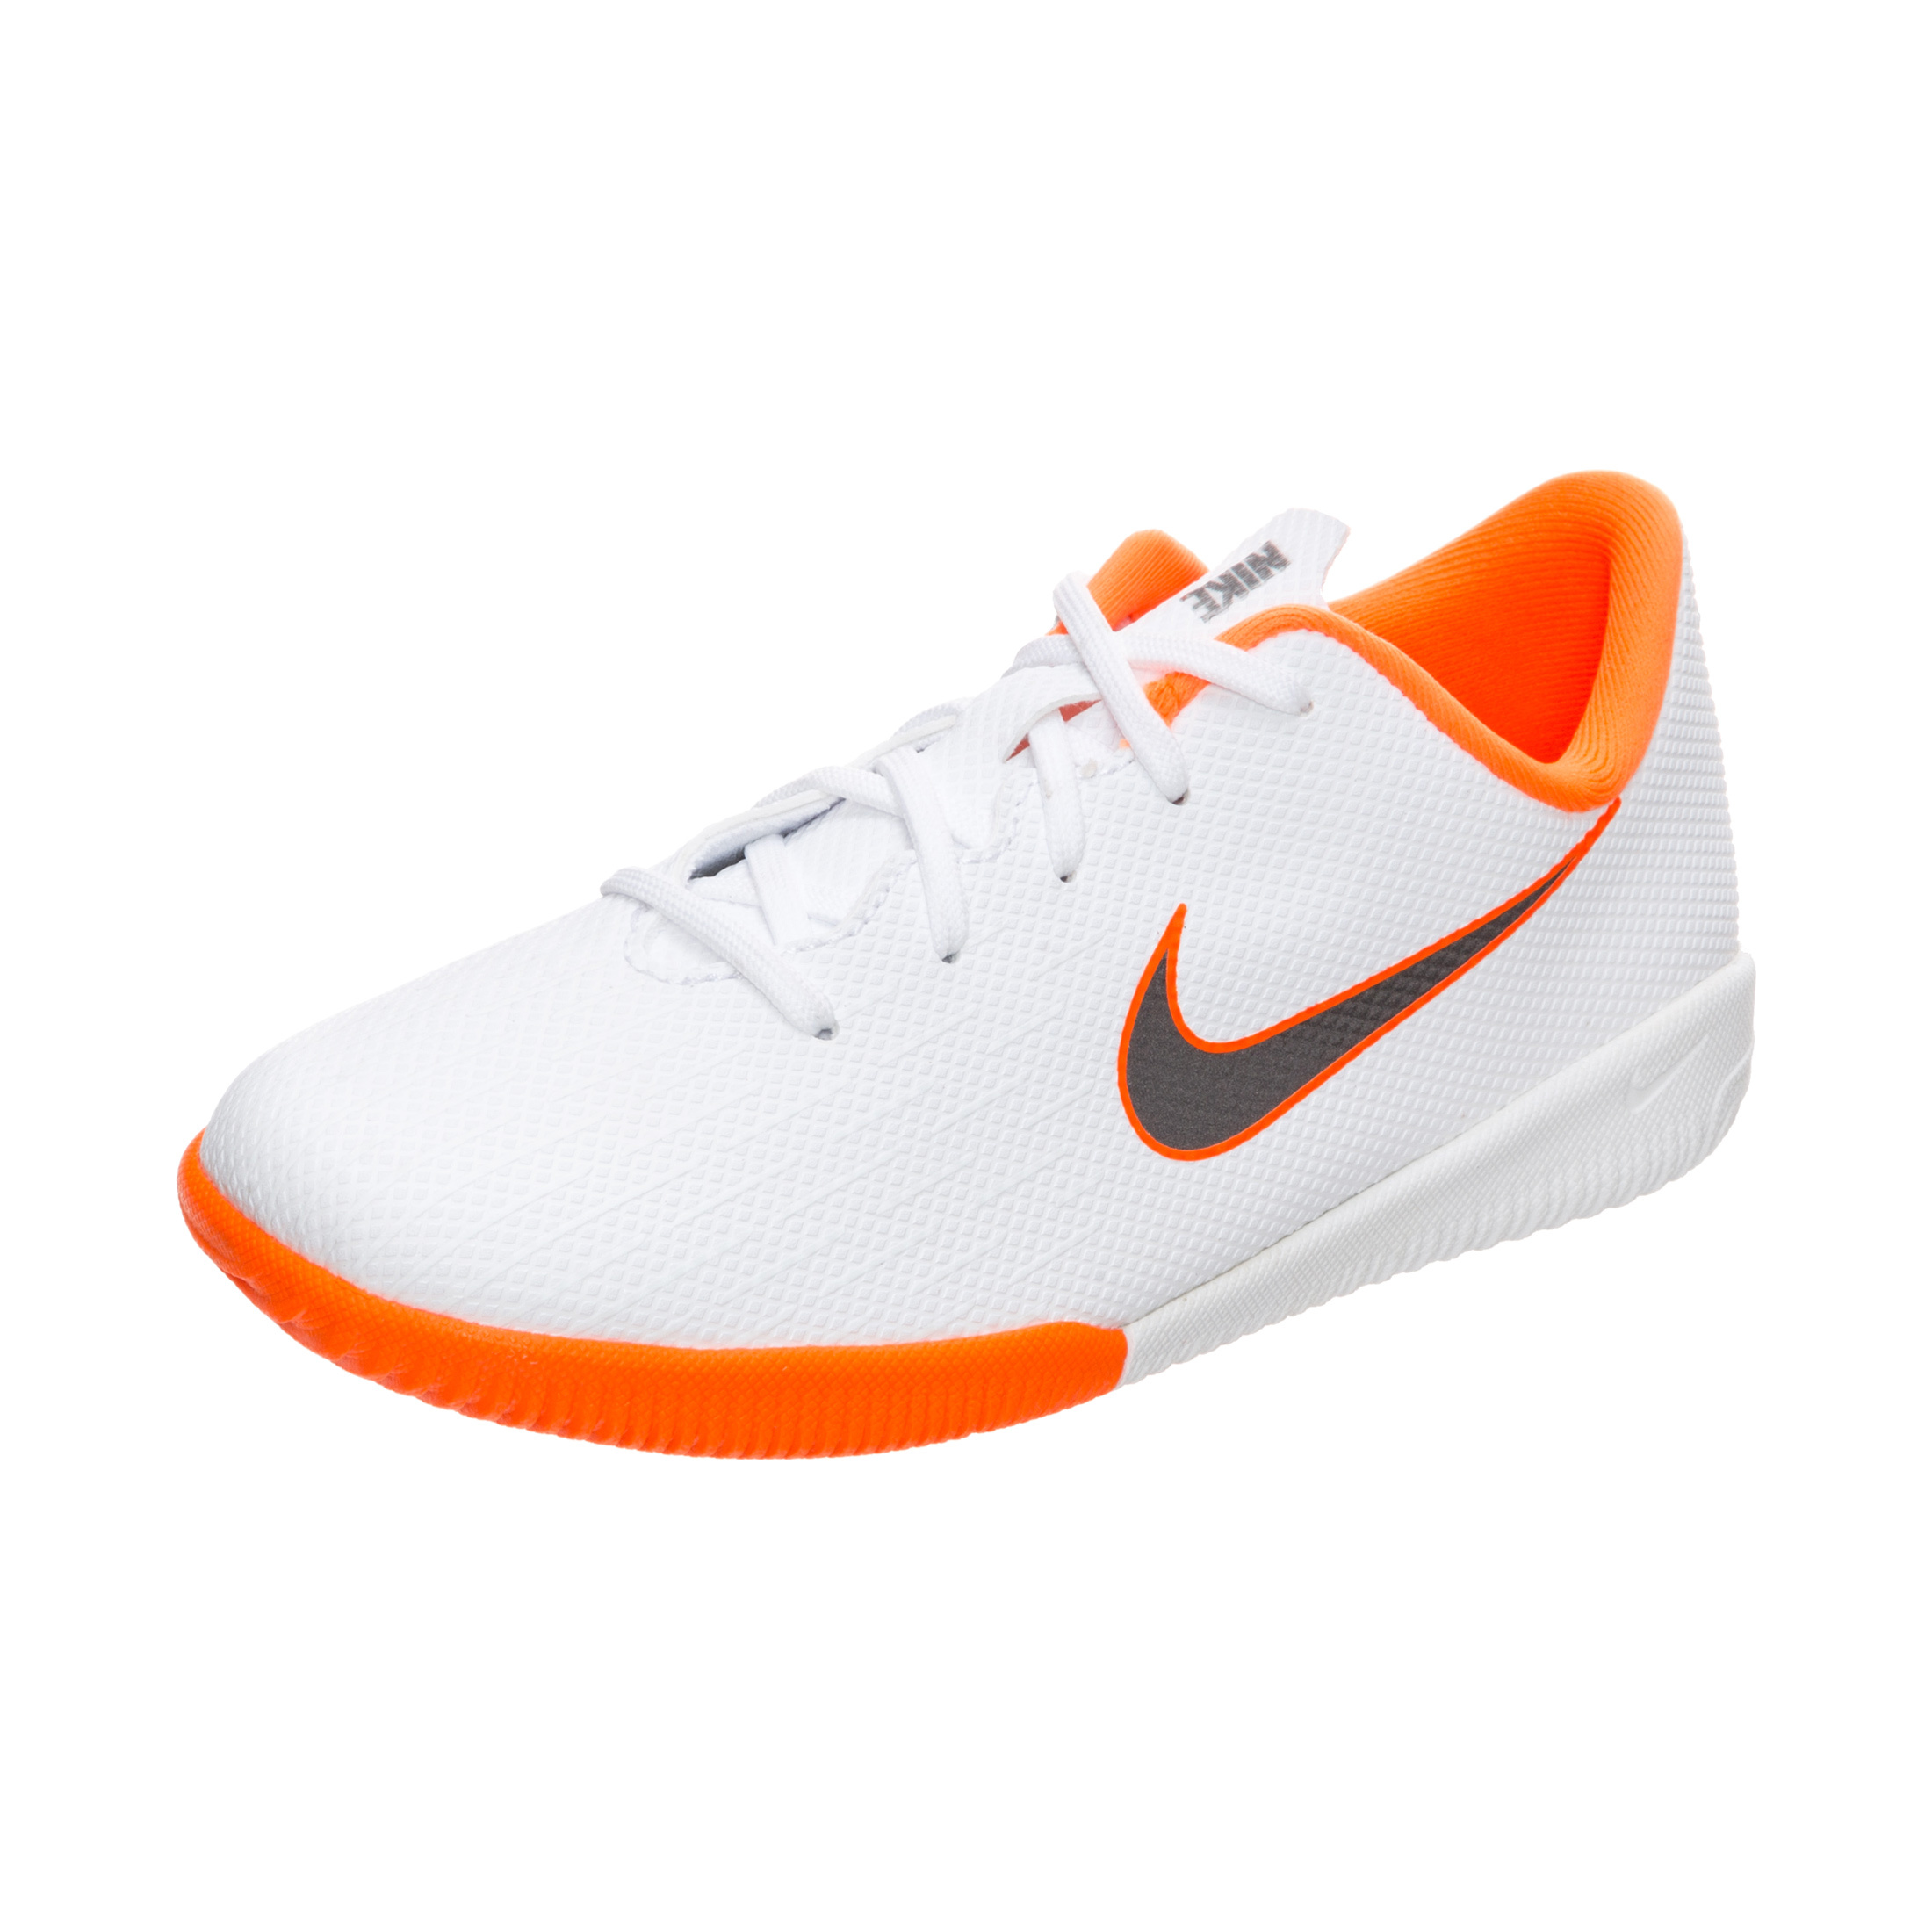 new products 3fc48 9286b Nike Mercurial VaporX 12 Academy IC Just Do It - White/Metallic Cool Grey  Kids